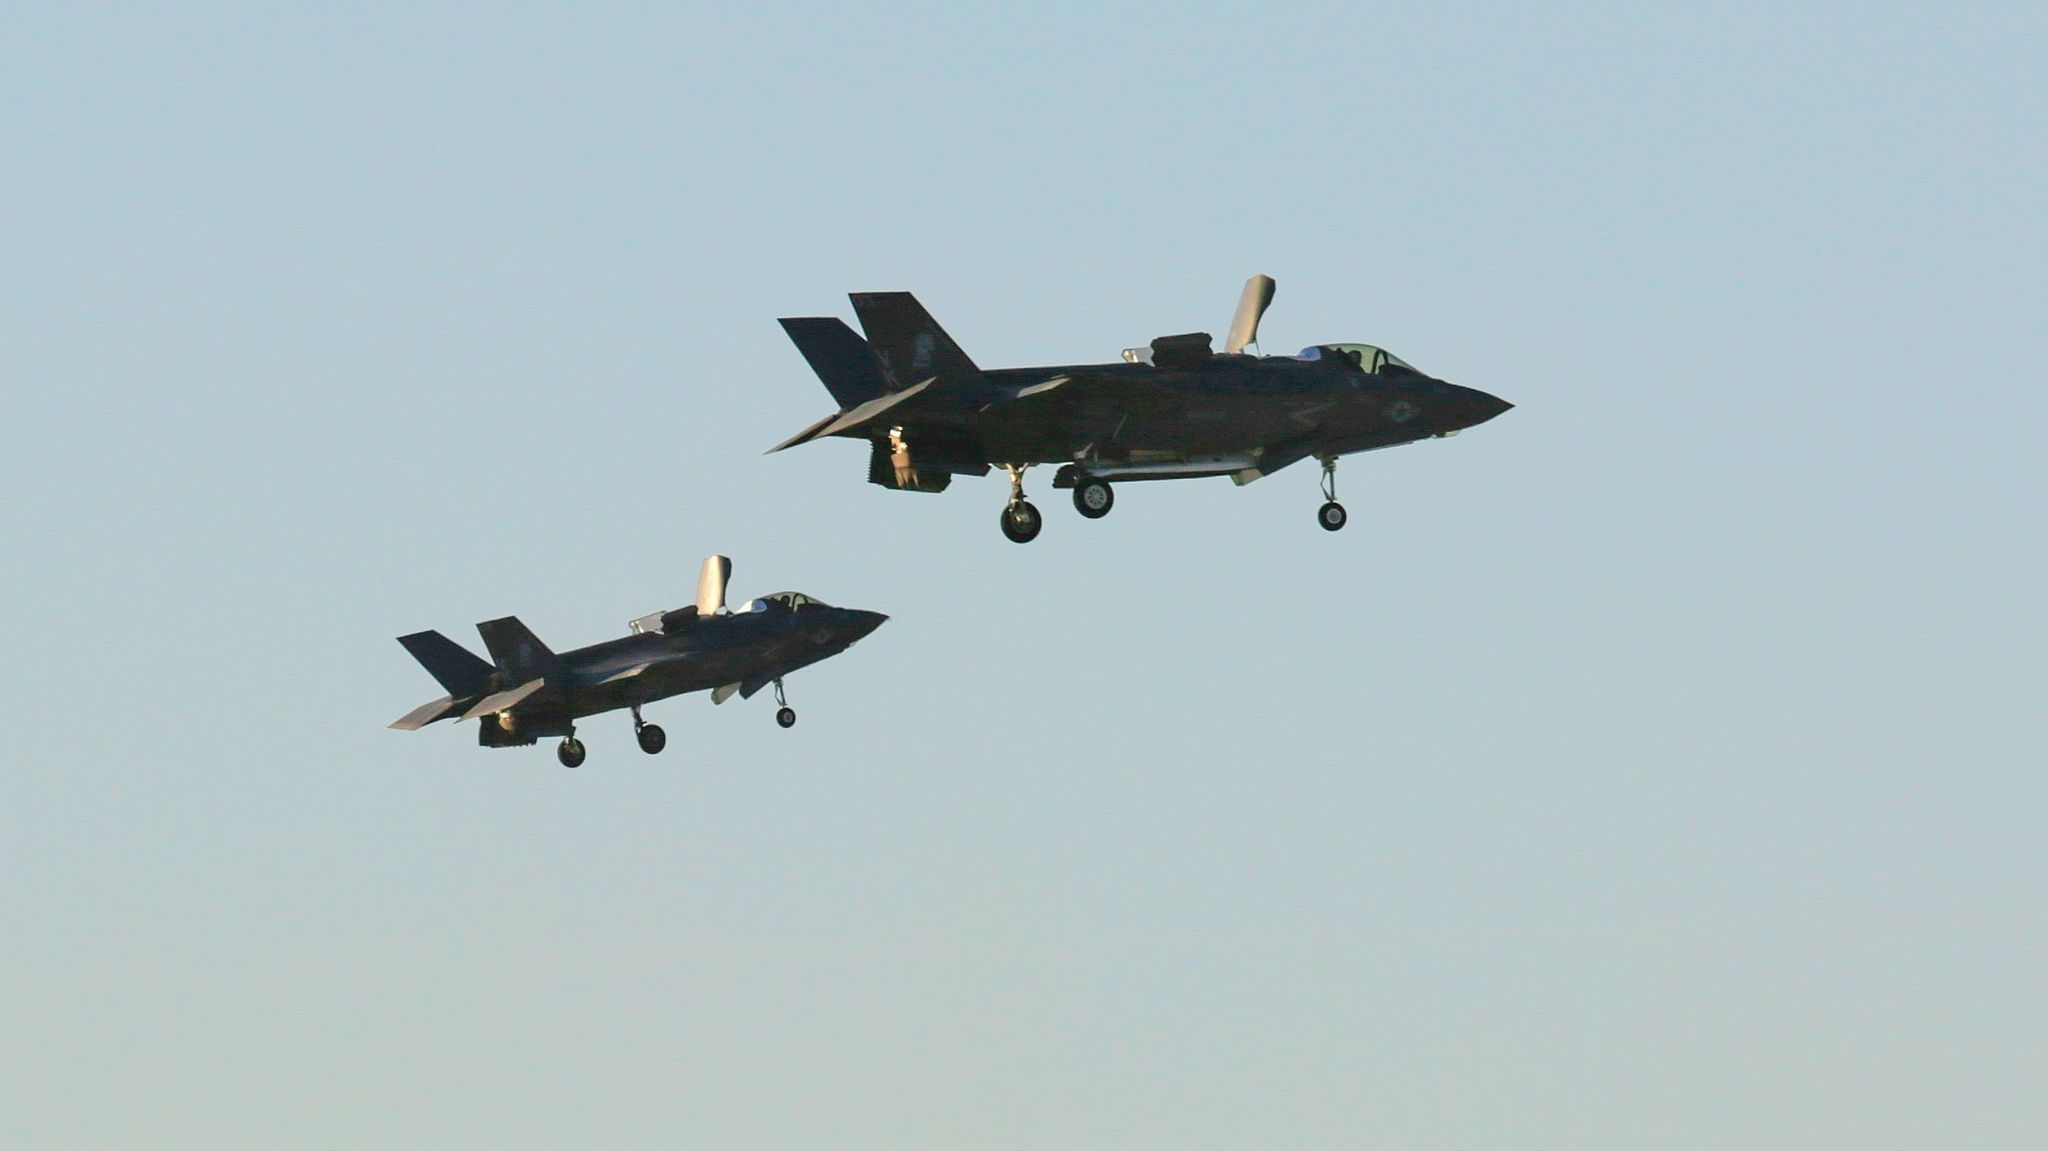 Two F-35B jets prepare to land at the Marine air base in Yuma on Oct. 20, 2016.